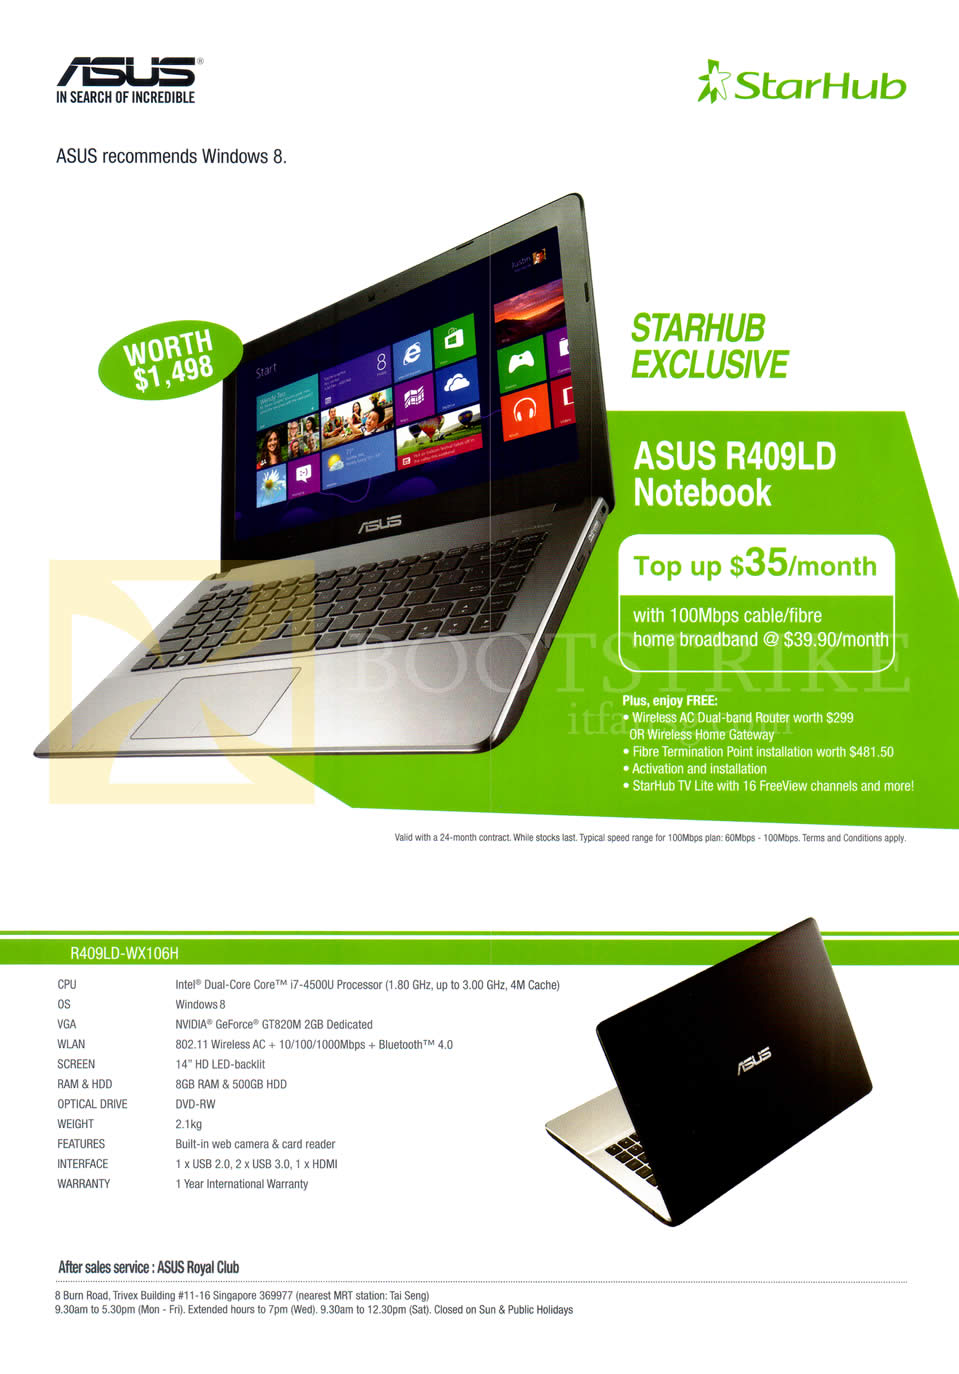 starhub asus notebooks r409ld specifications it show 2014